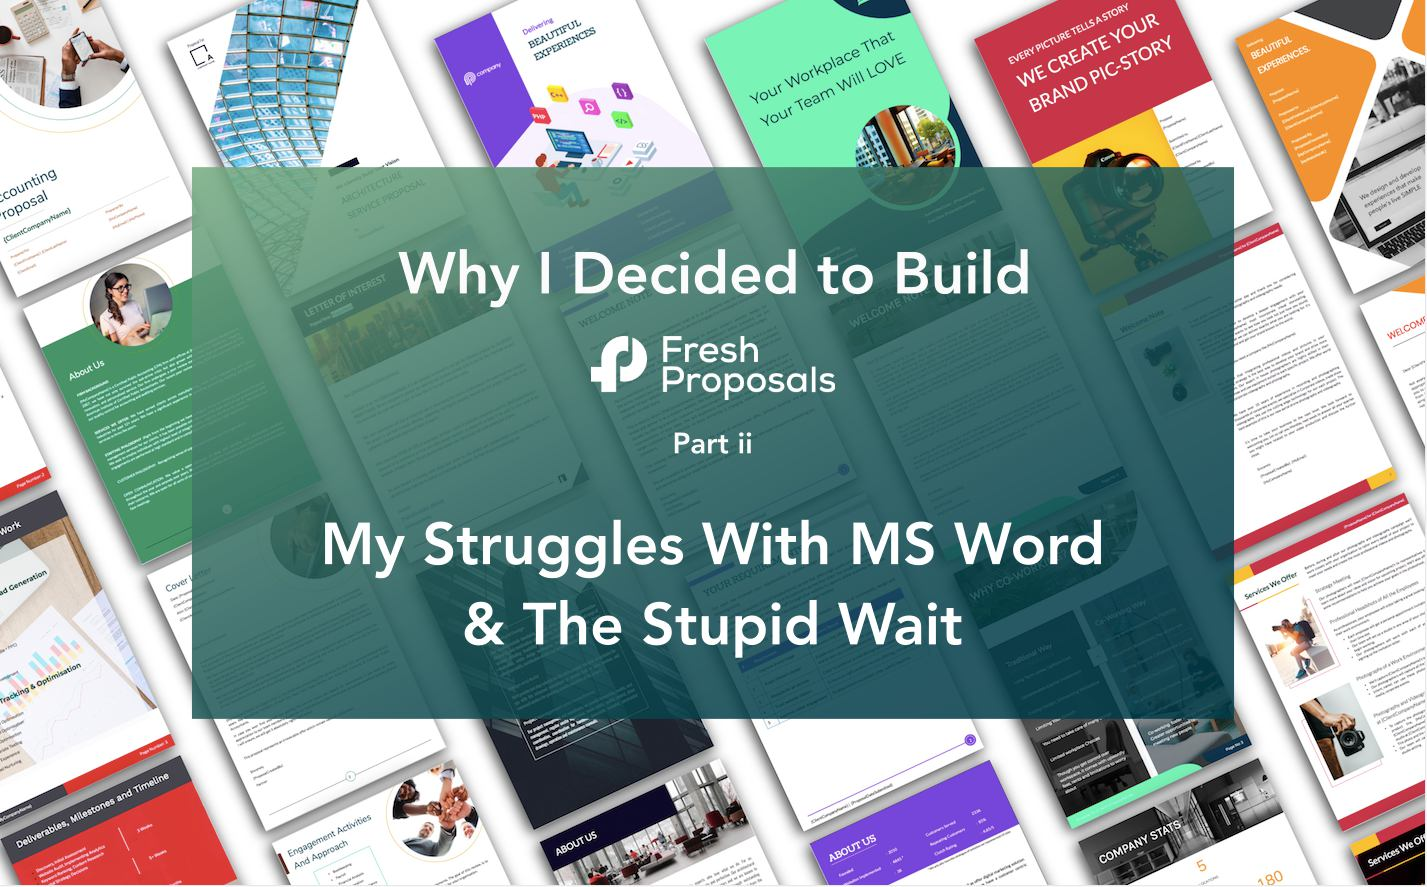 Why Fresh Proposals - Challenges with Microsoft Word